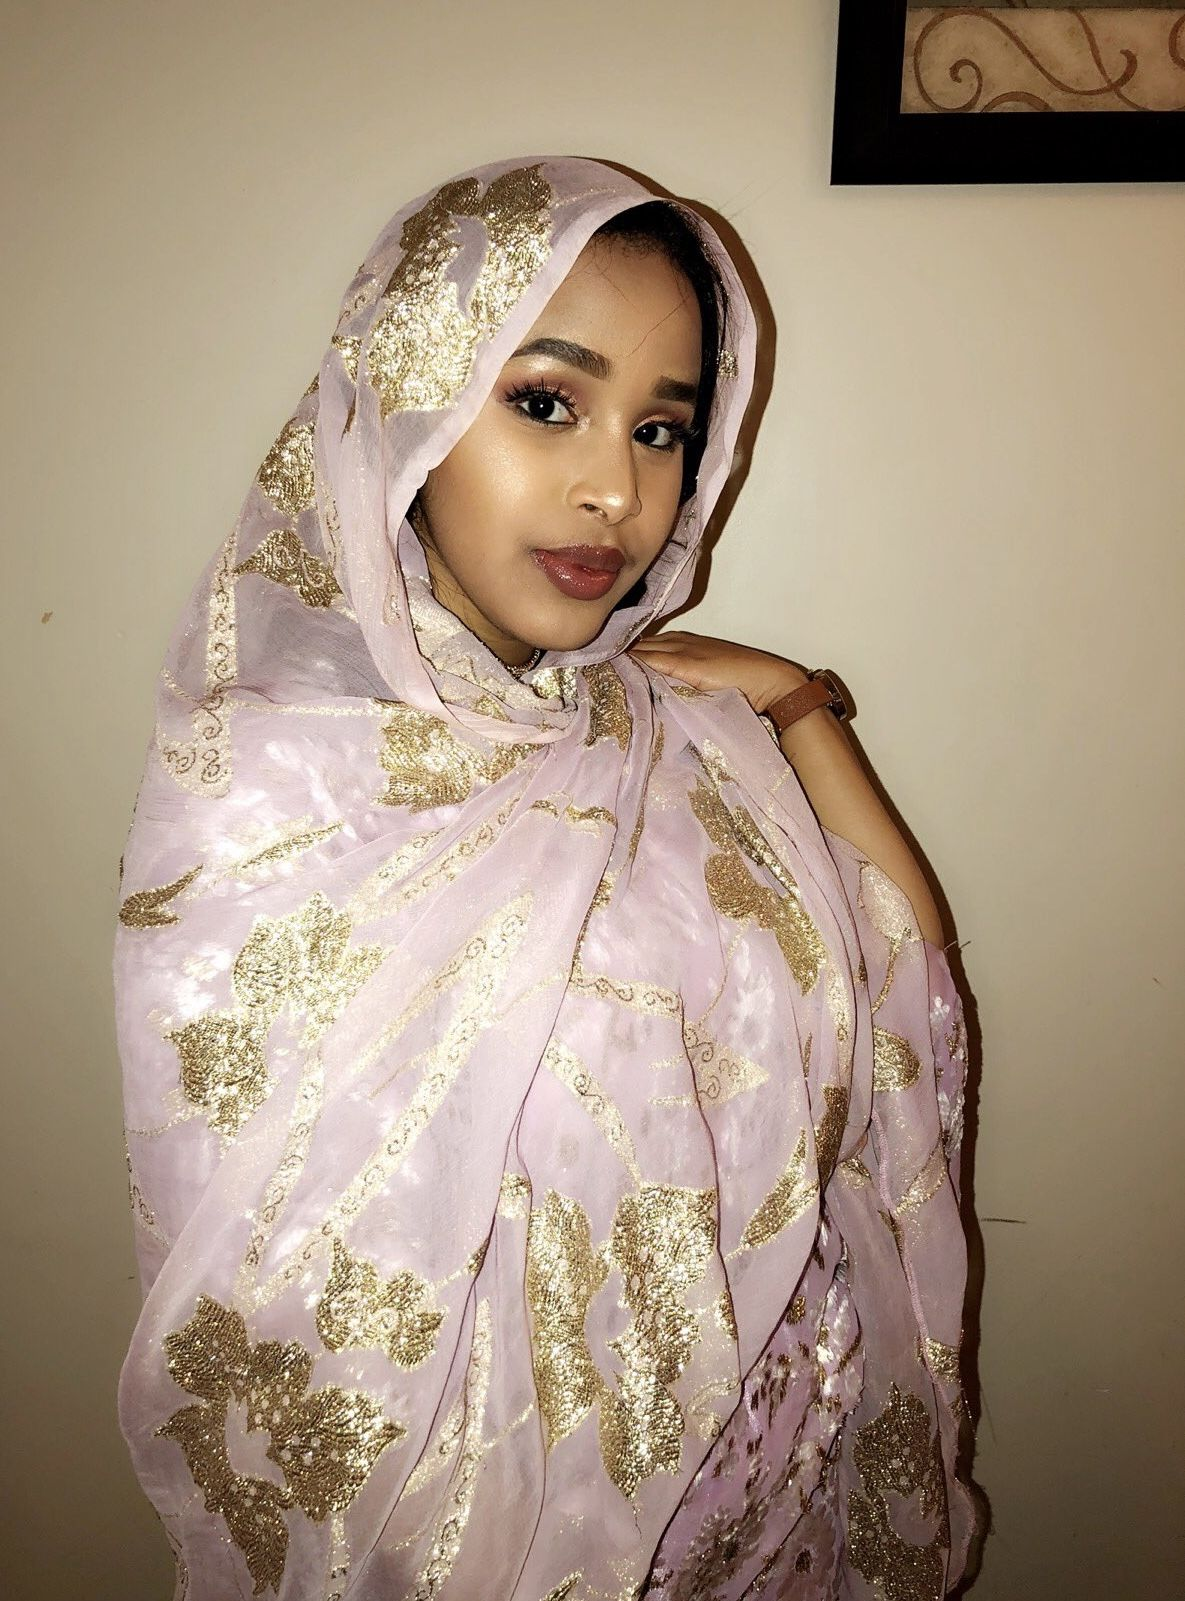 Naughty somali girls